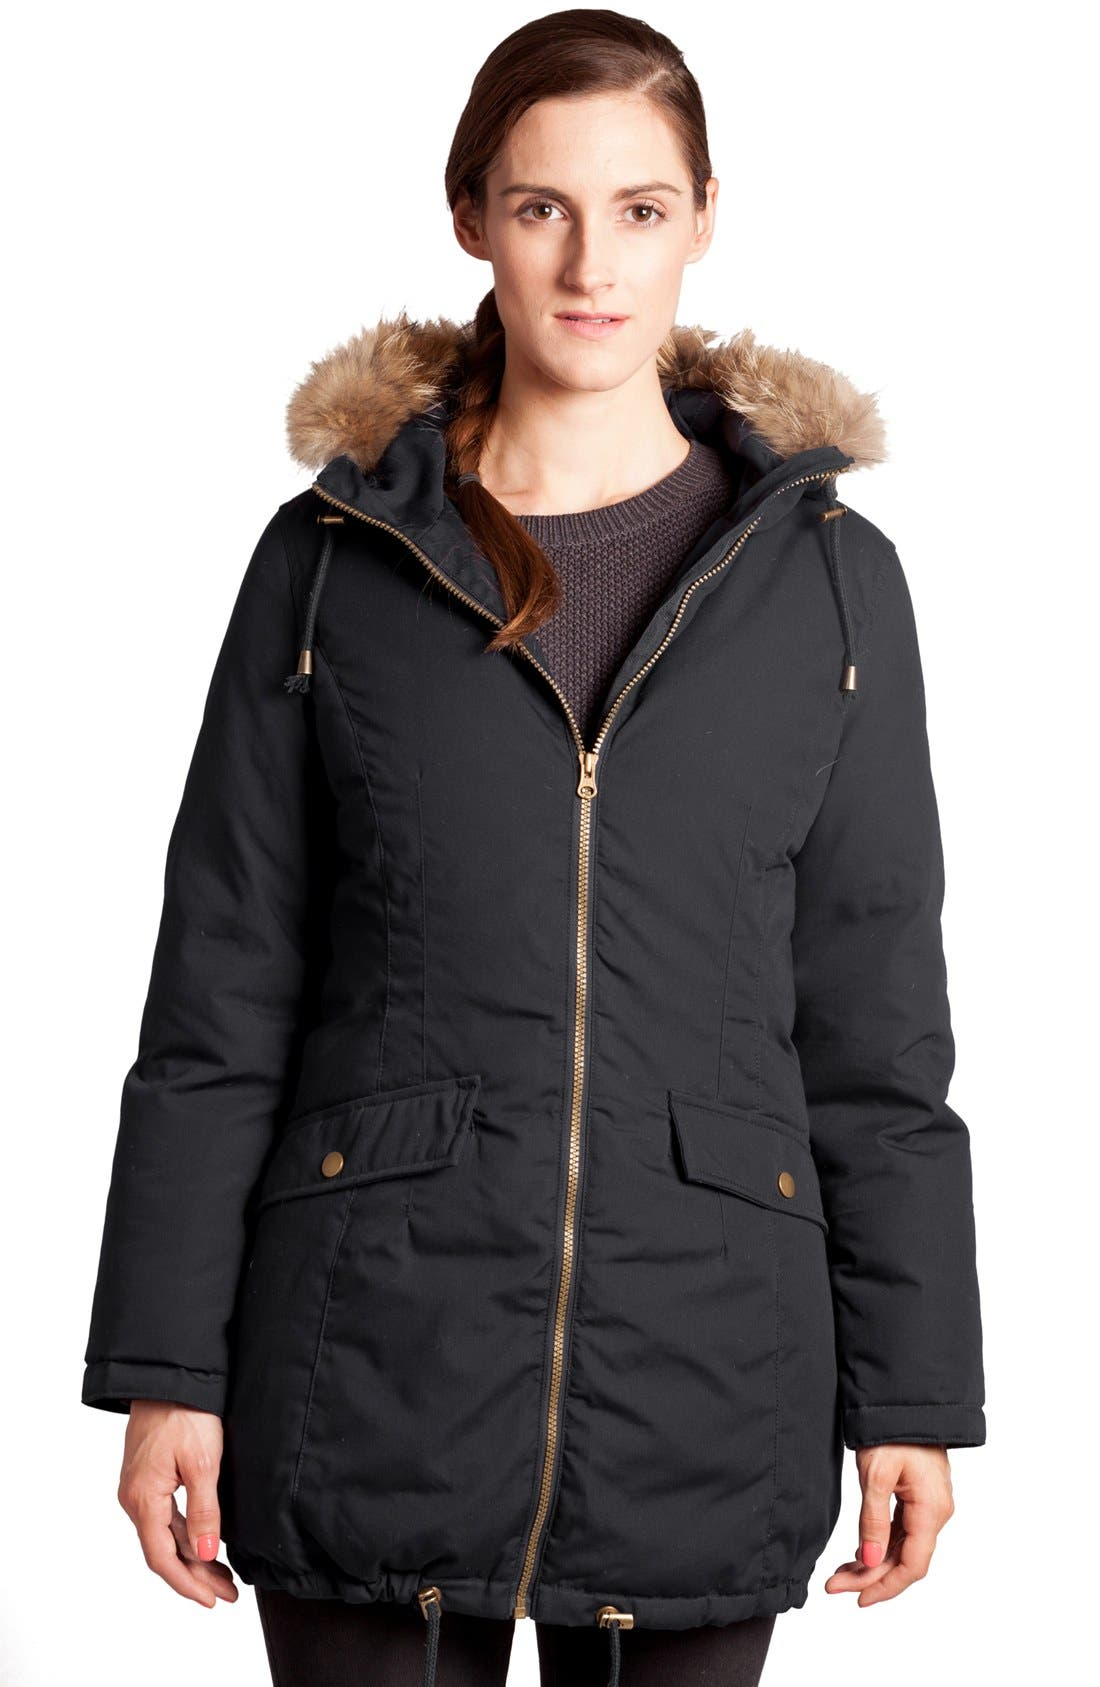 Convertible Down 3-in-1 Maternity Jacket,                             Alternate thumbnail 10, color,                             BLACK